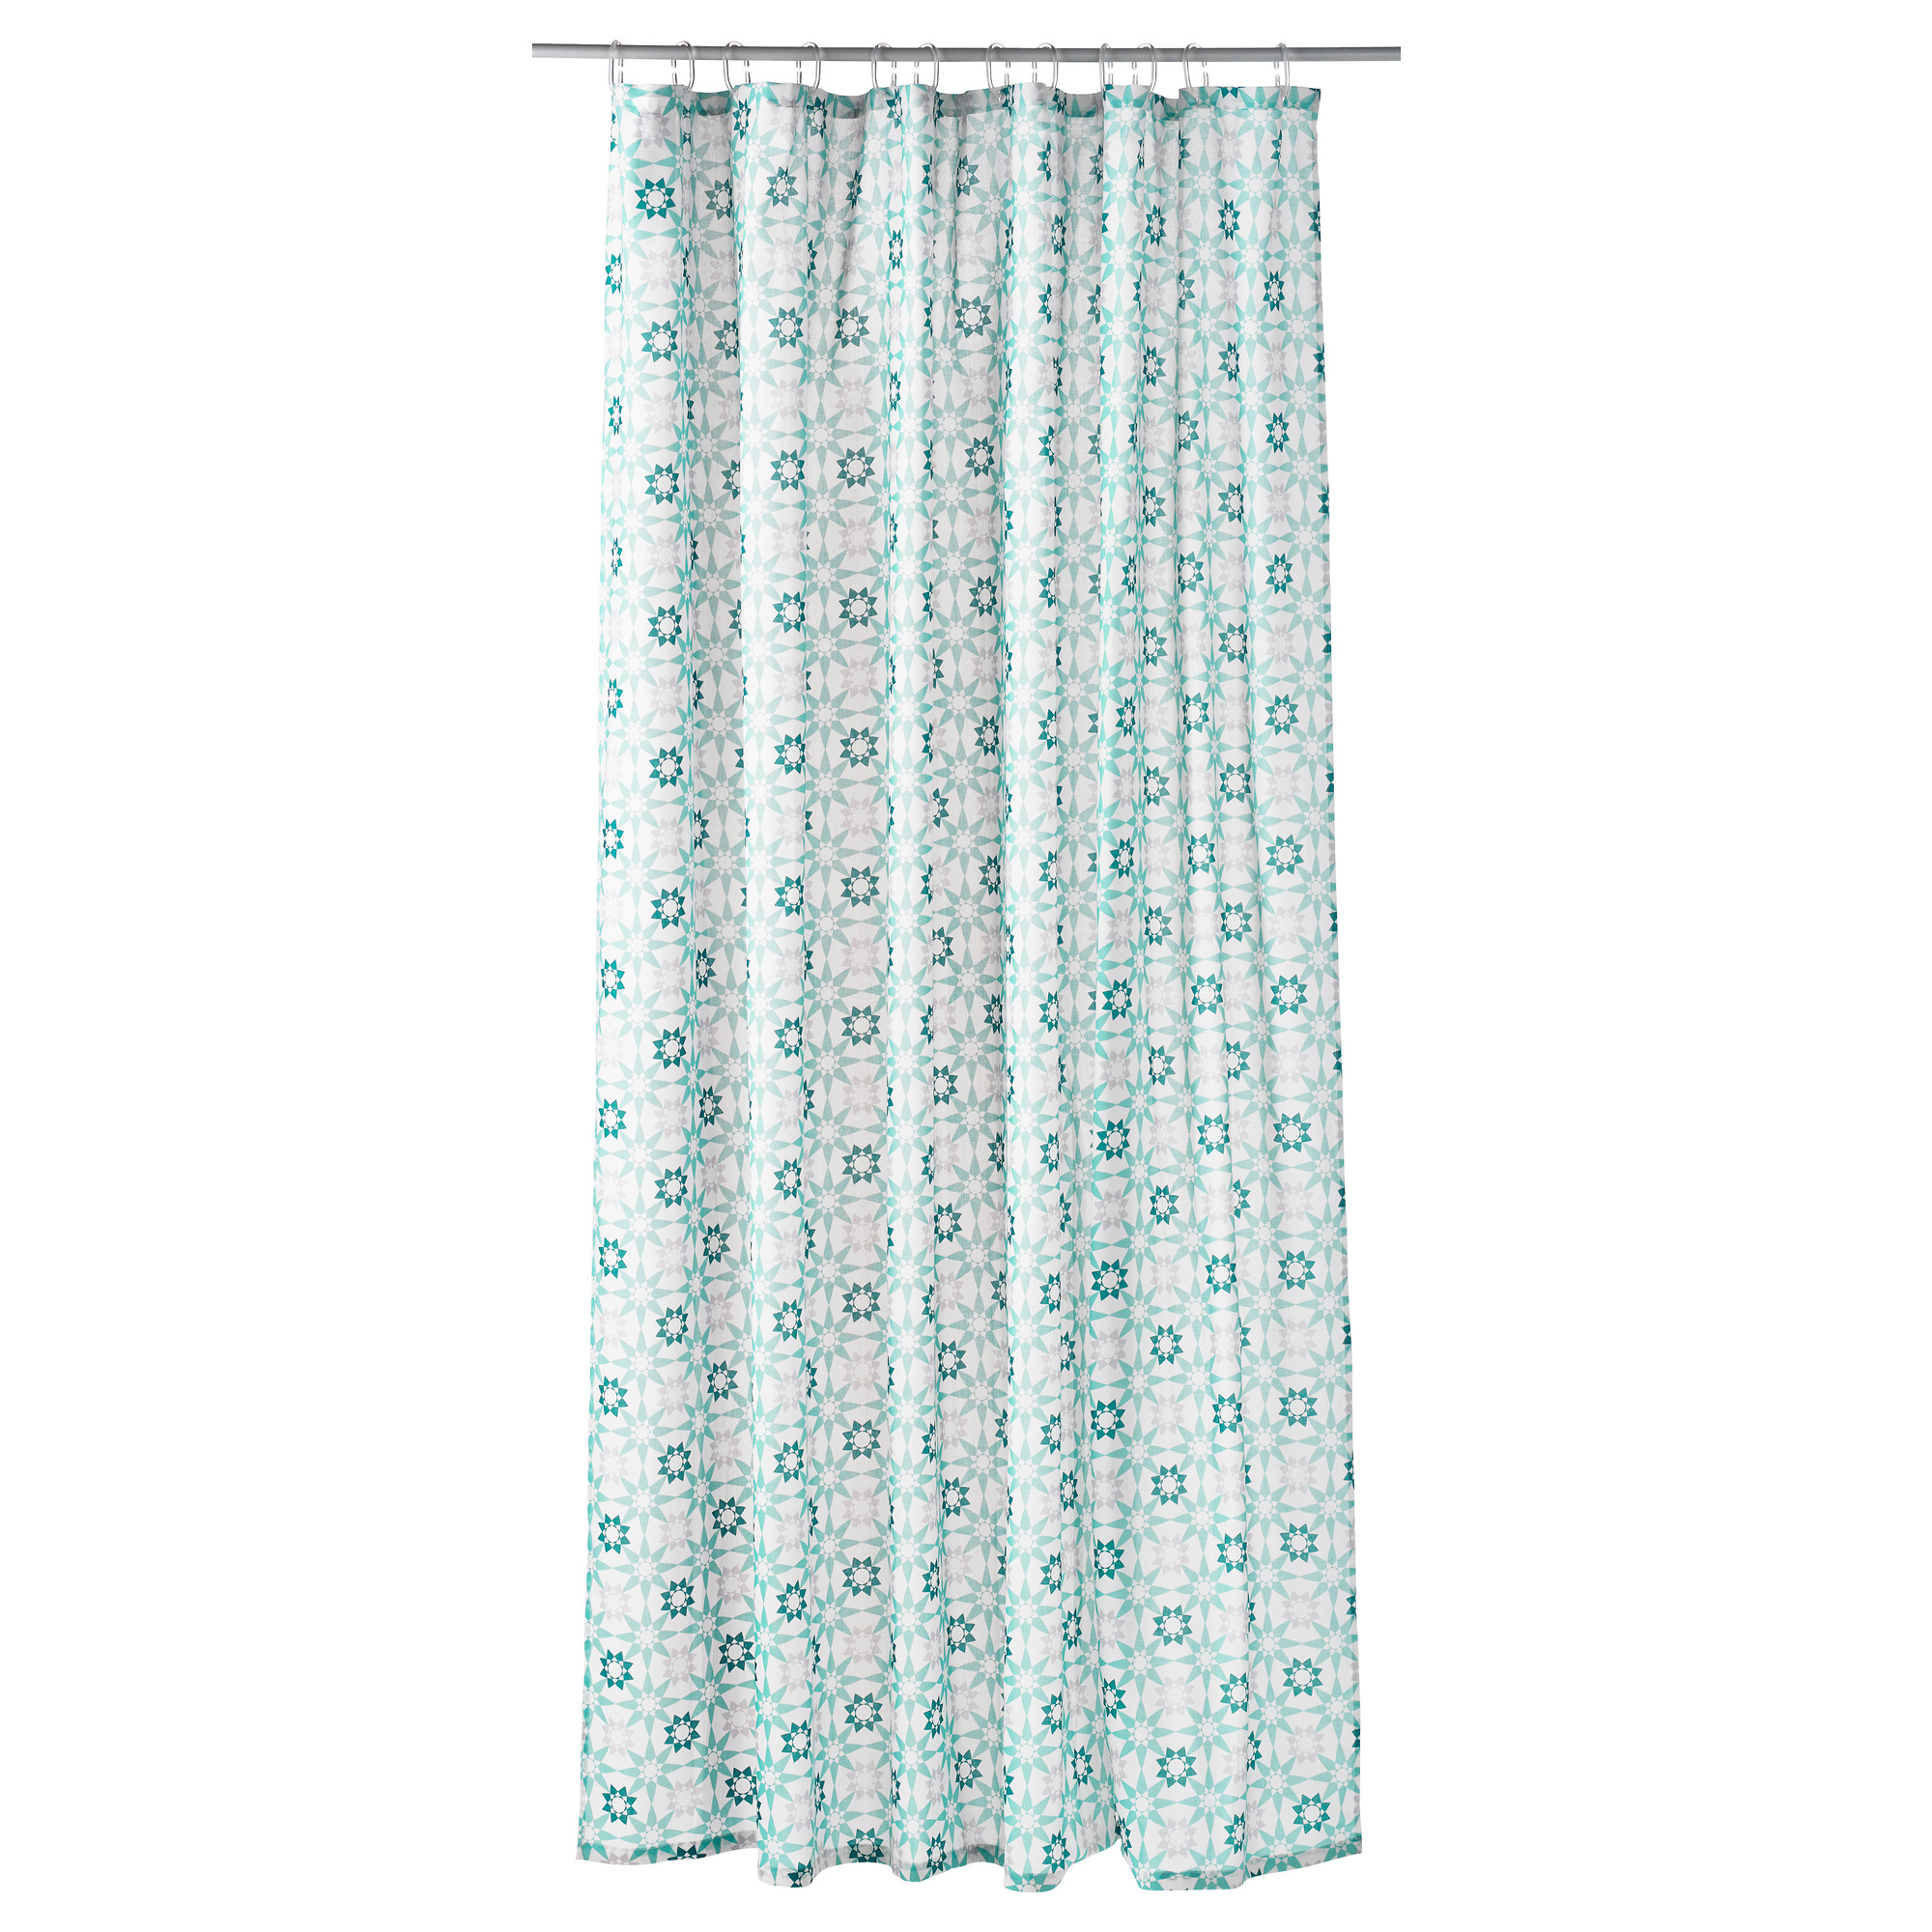 Ikea Shower Curtain for Best Your Bathroom Decoration: Ikea Shower Curtain | Shower Curtains Cheap | Shower Curtain With Liner